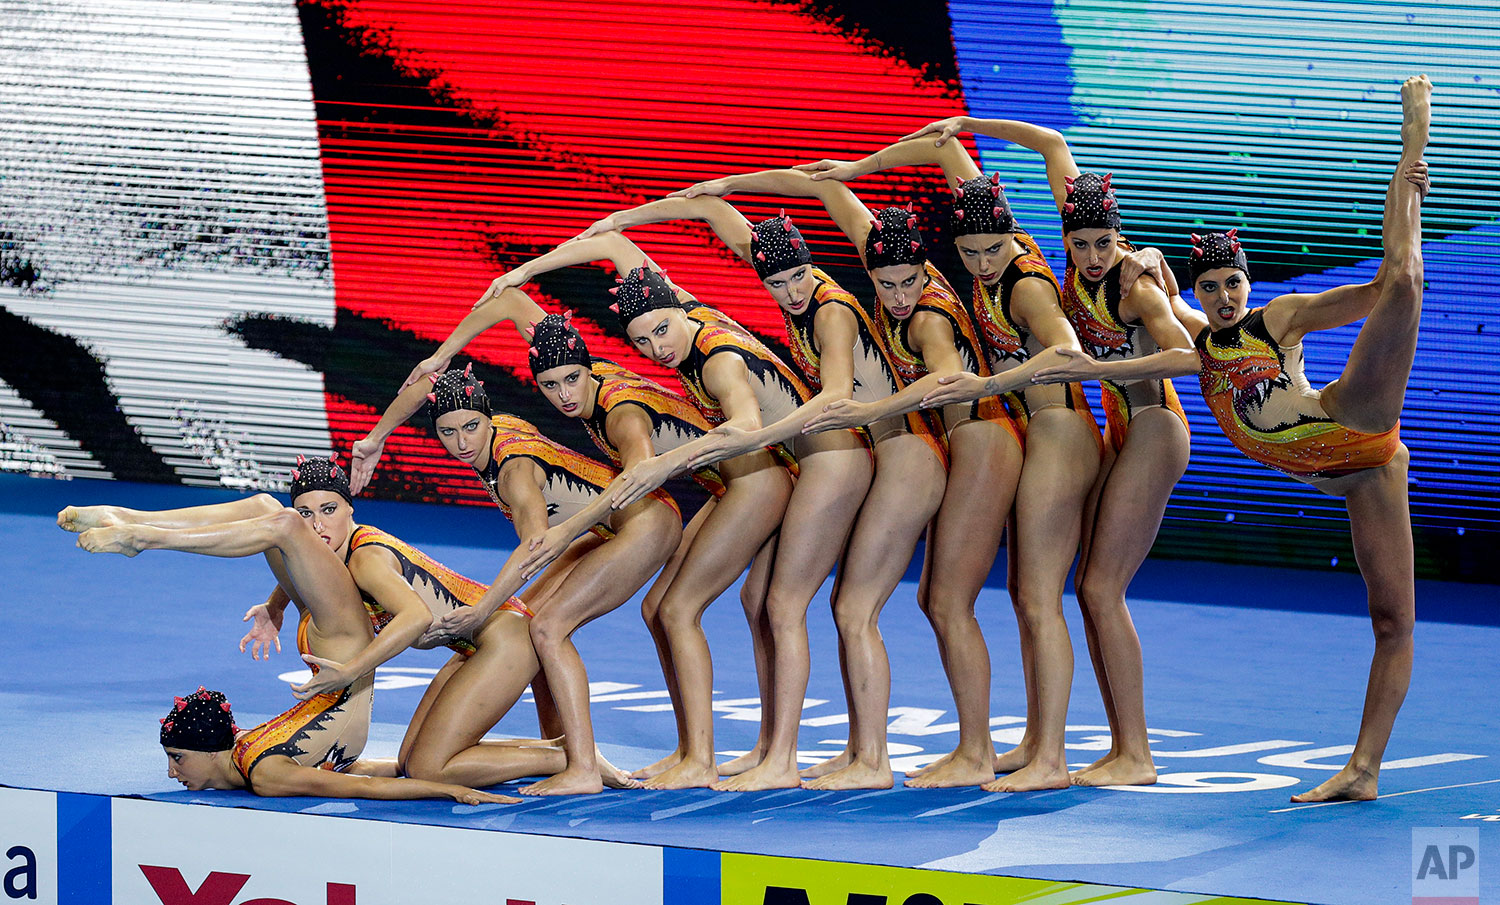 Italy compete in the highlight team final at the World Swimming Championships in Gwangju, South Korea, Monday, July 15, 2019. (AP Photo/Mark Baker)